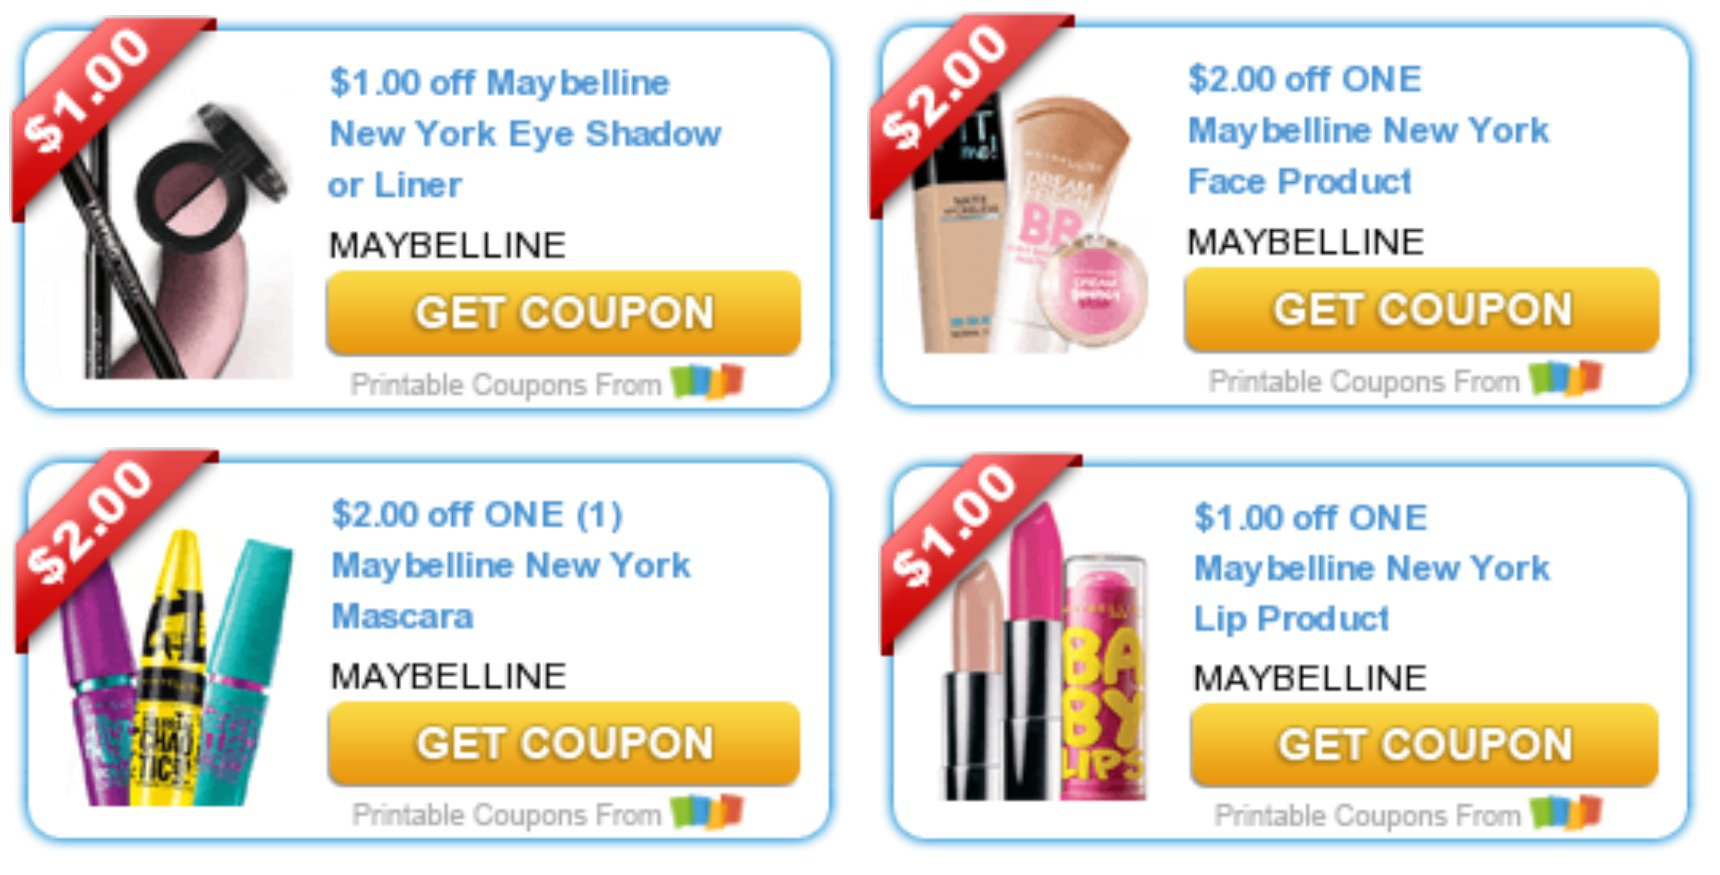 photo about Maybelline Coupons Printable referred to as 4* Maybelline Coupon codes RESET \u003d Remarkable Make-up Bargains at